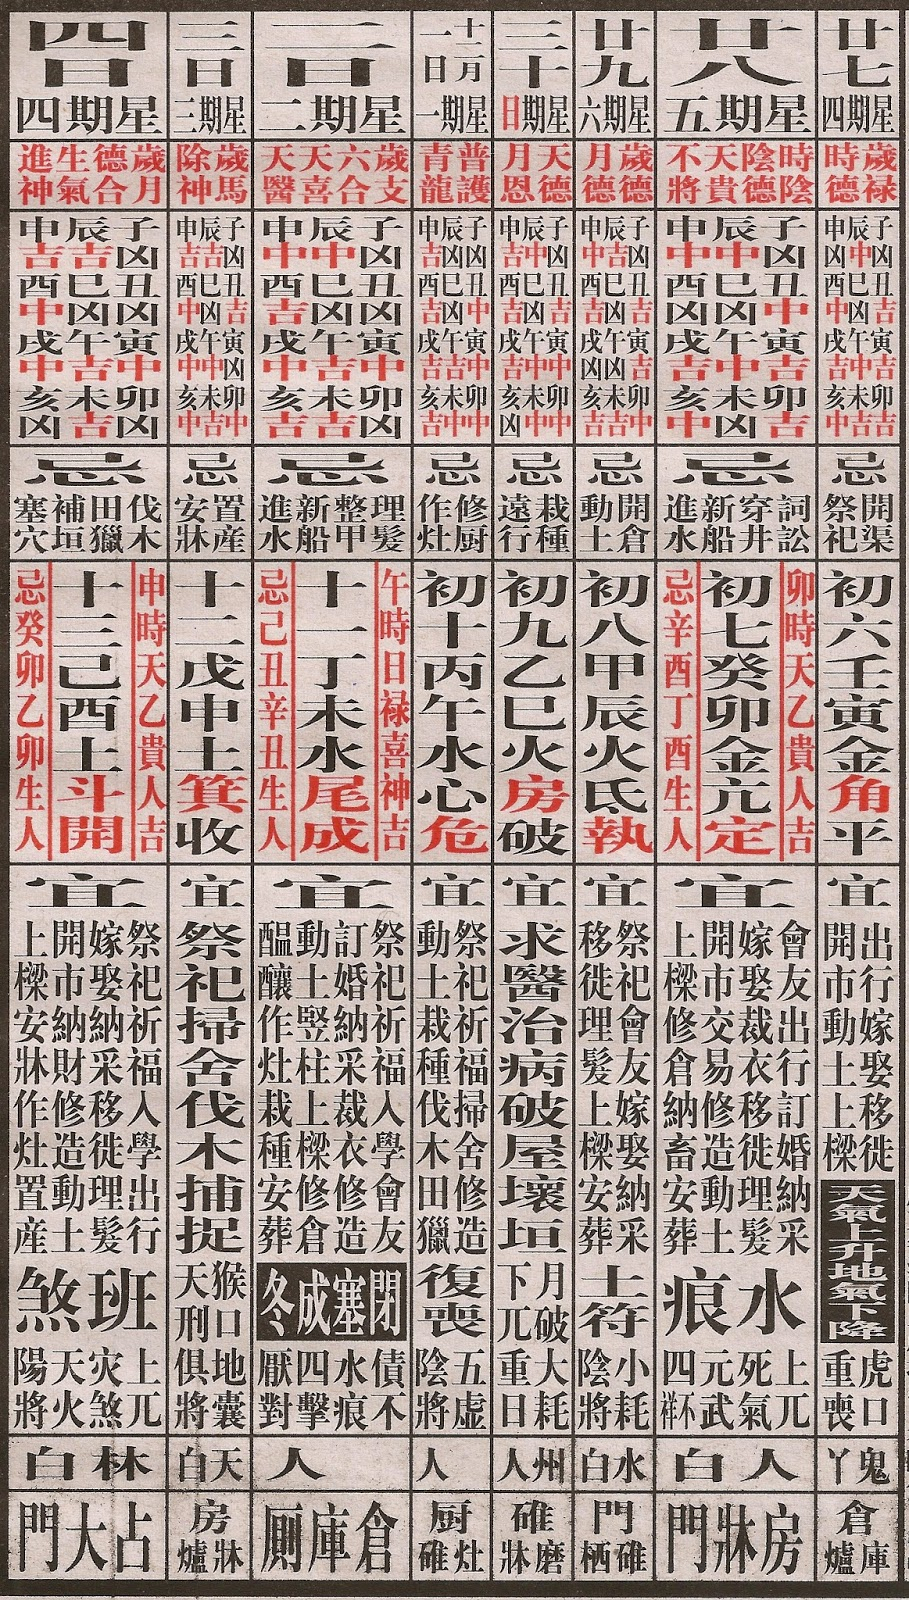 Round And Square: November 2014 pertaining to What Is The Lunar Calendar Date Today